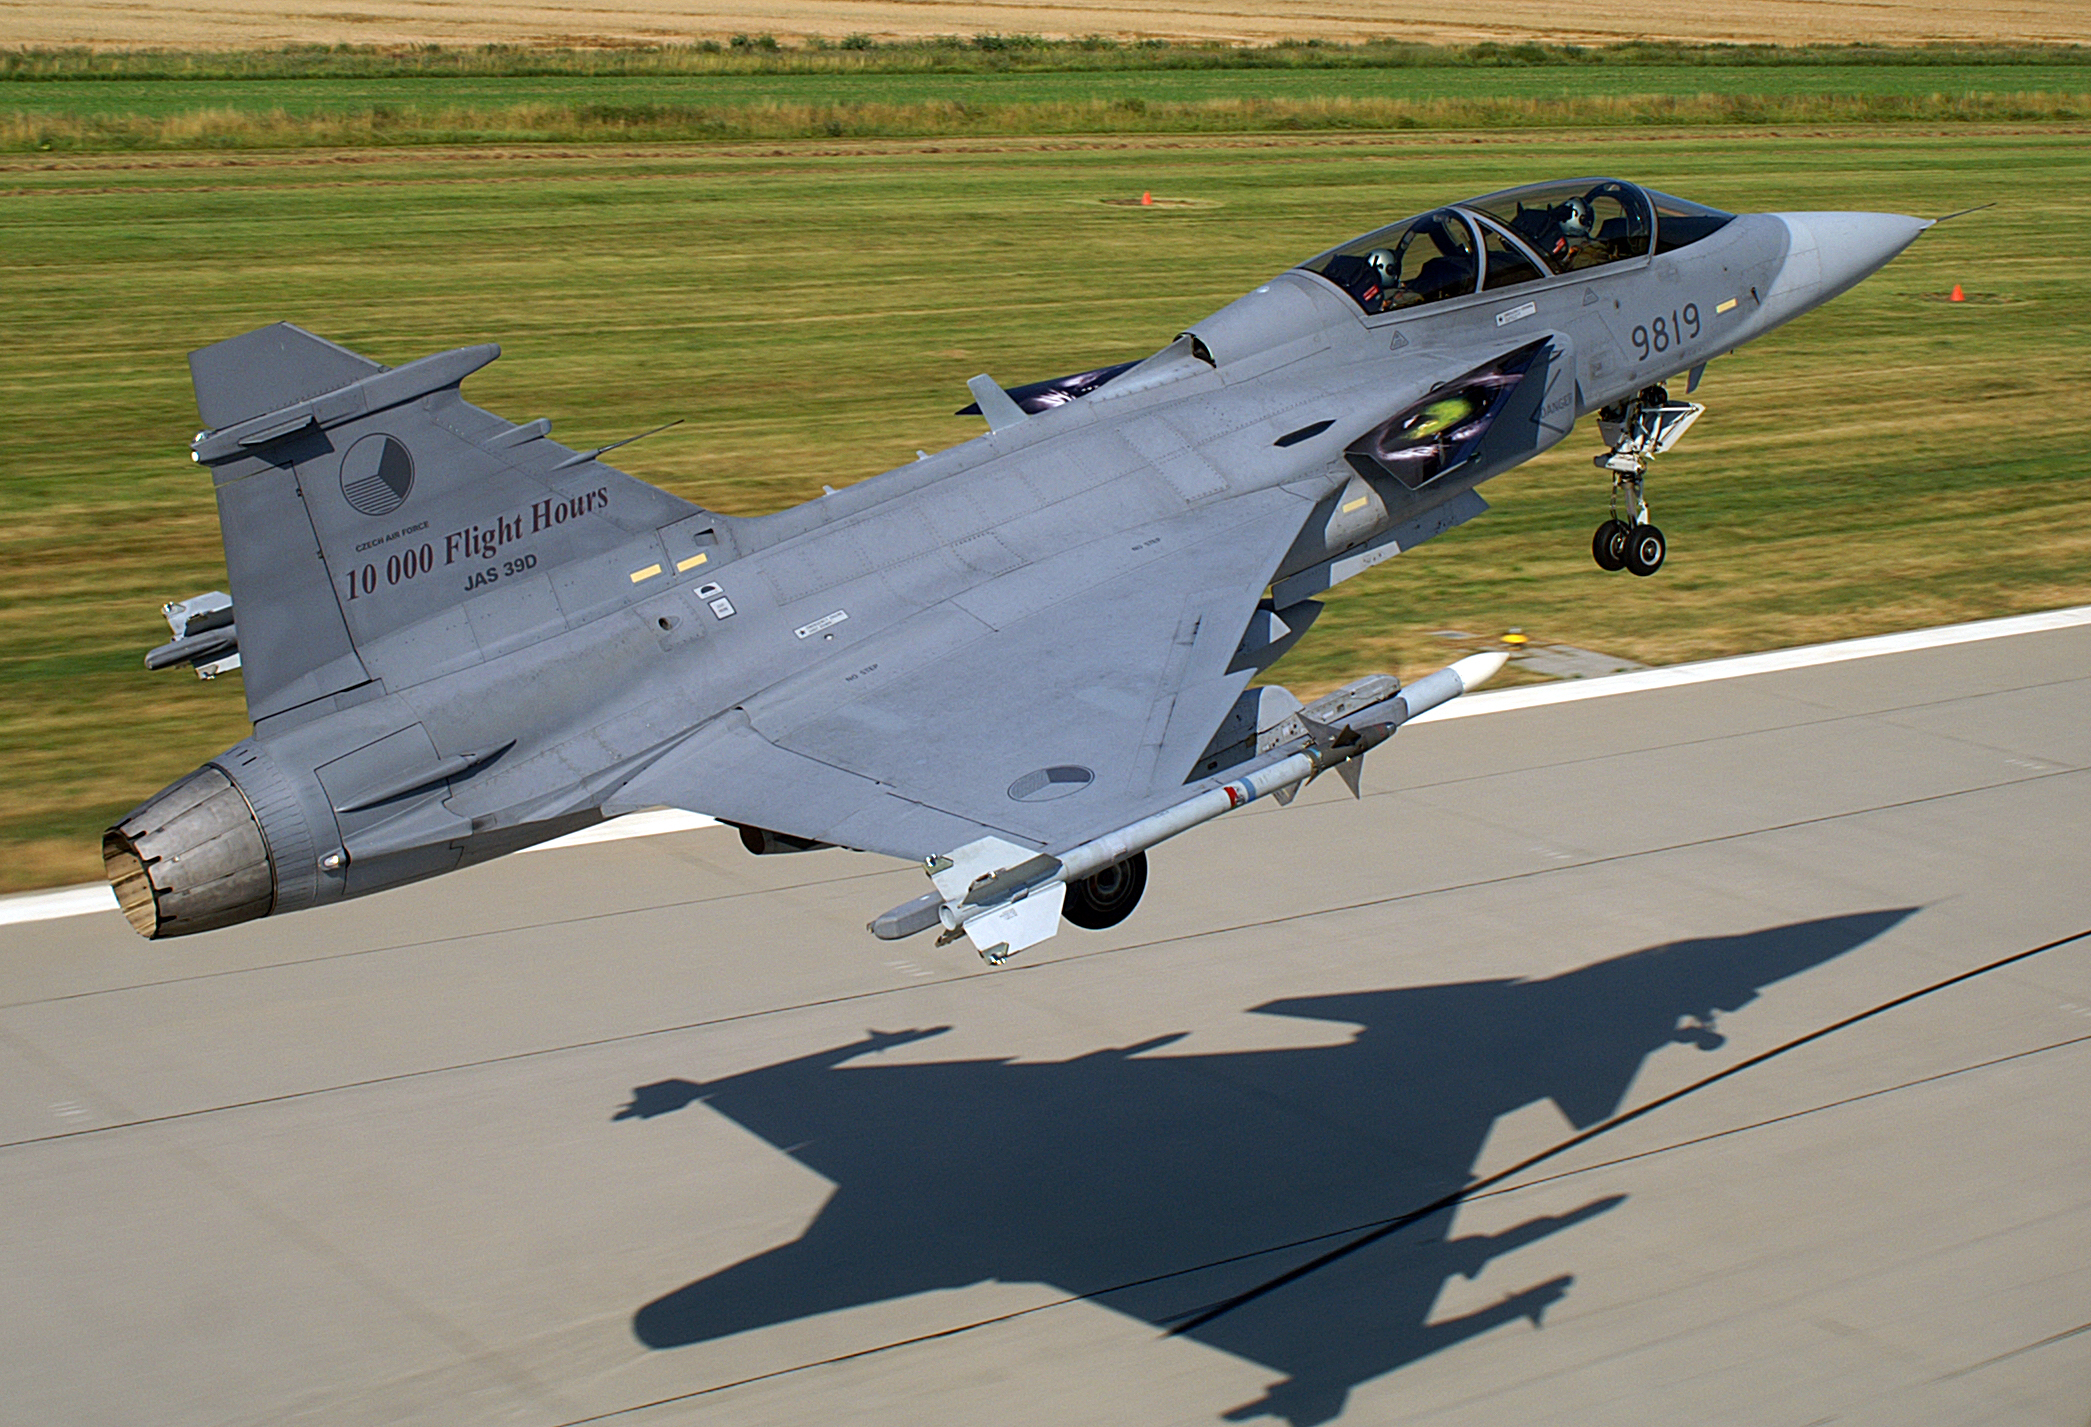 File:Saab JAS-39 Gripen of the Czech Air Force taking off from AFB Čáslav.jpg - Wikimedia Commons